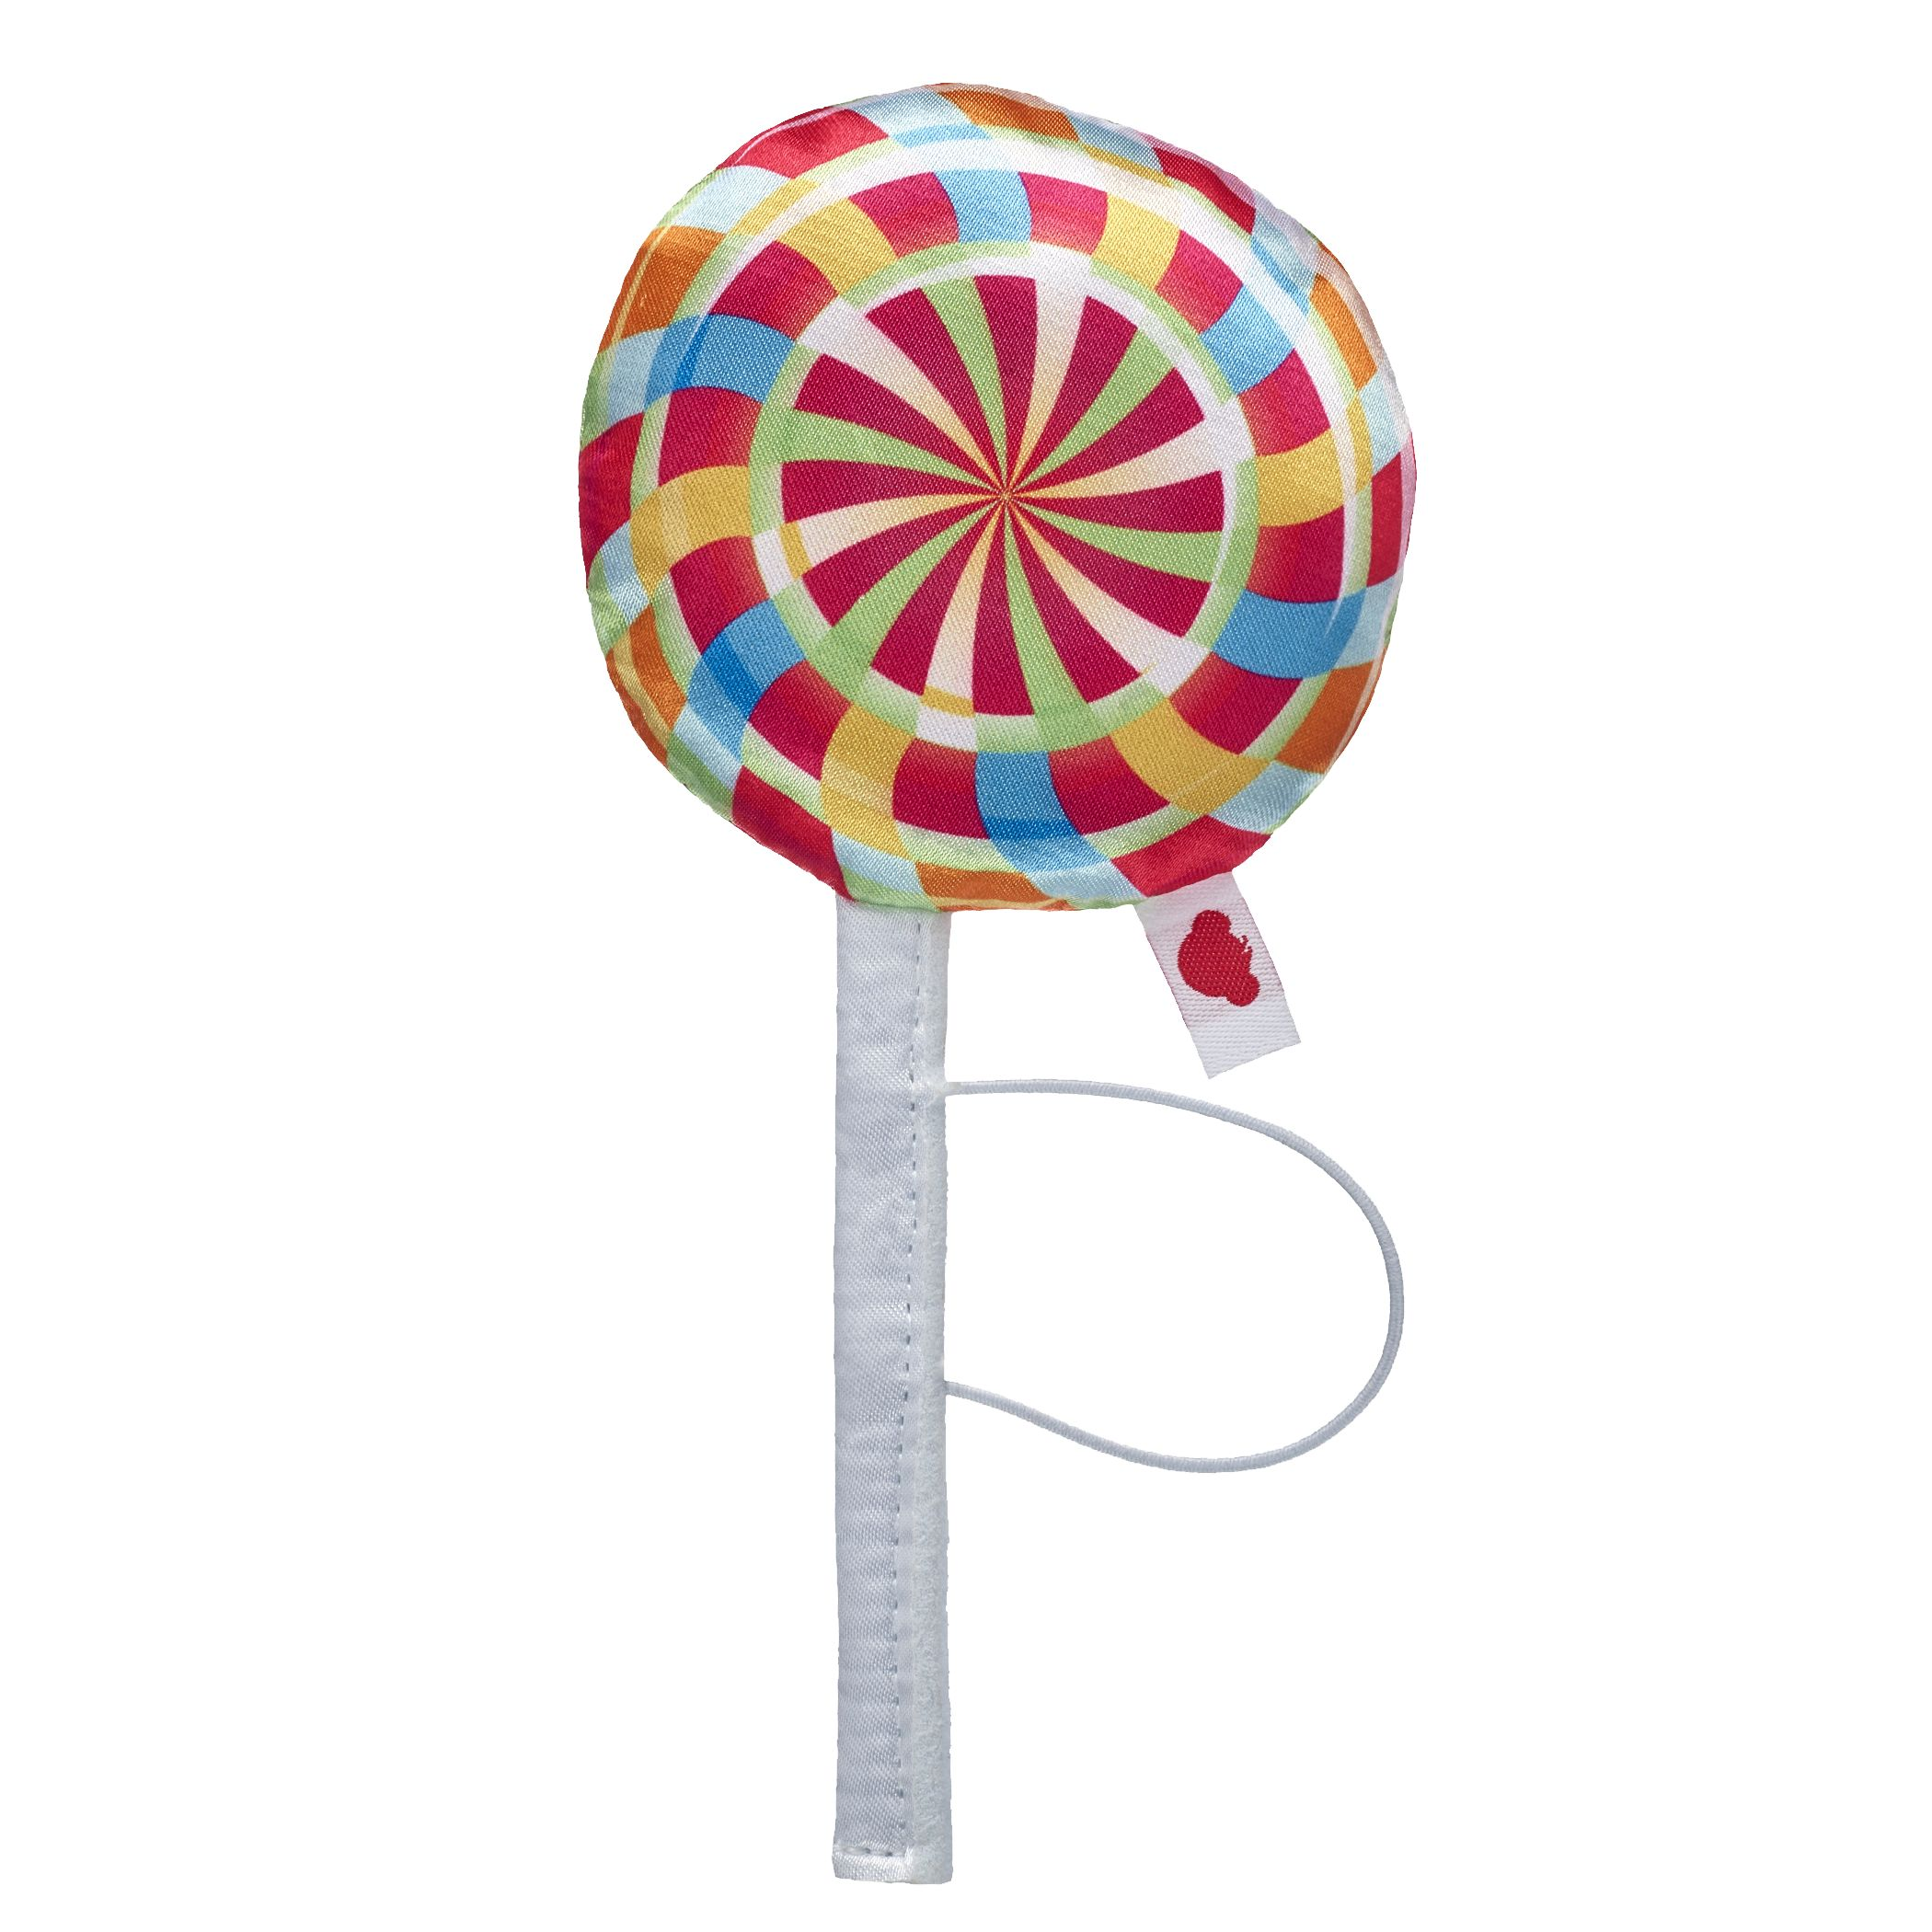 Lollipop Wrist Accessory